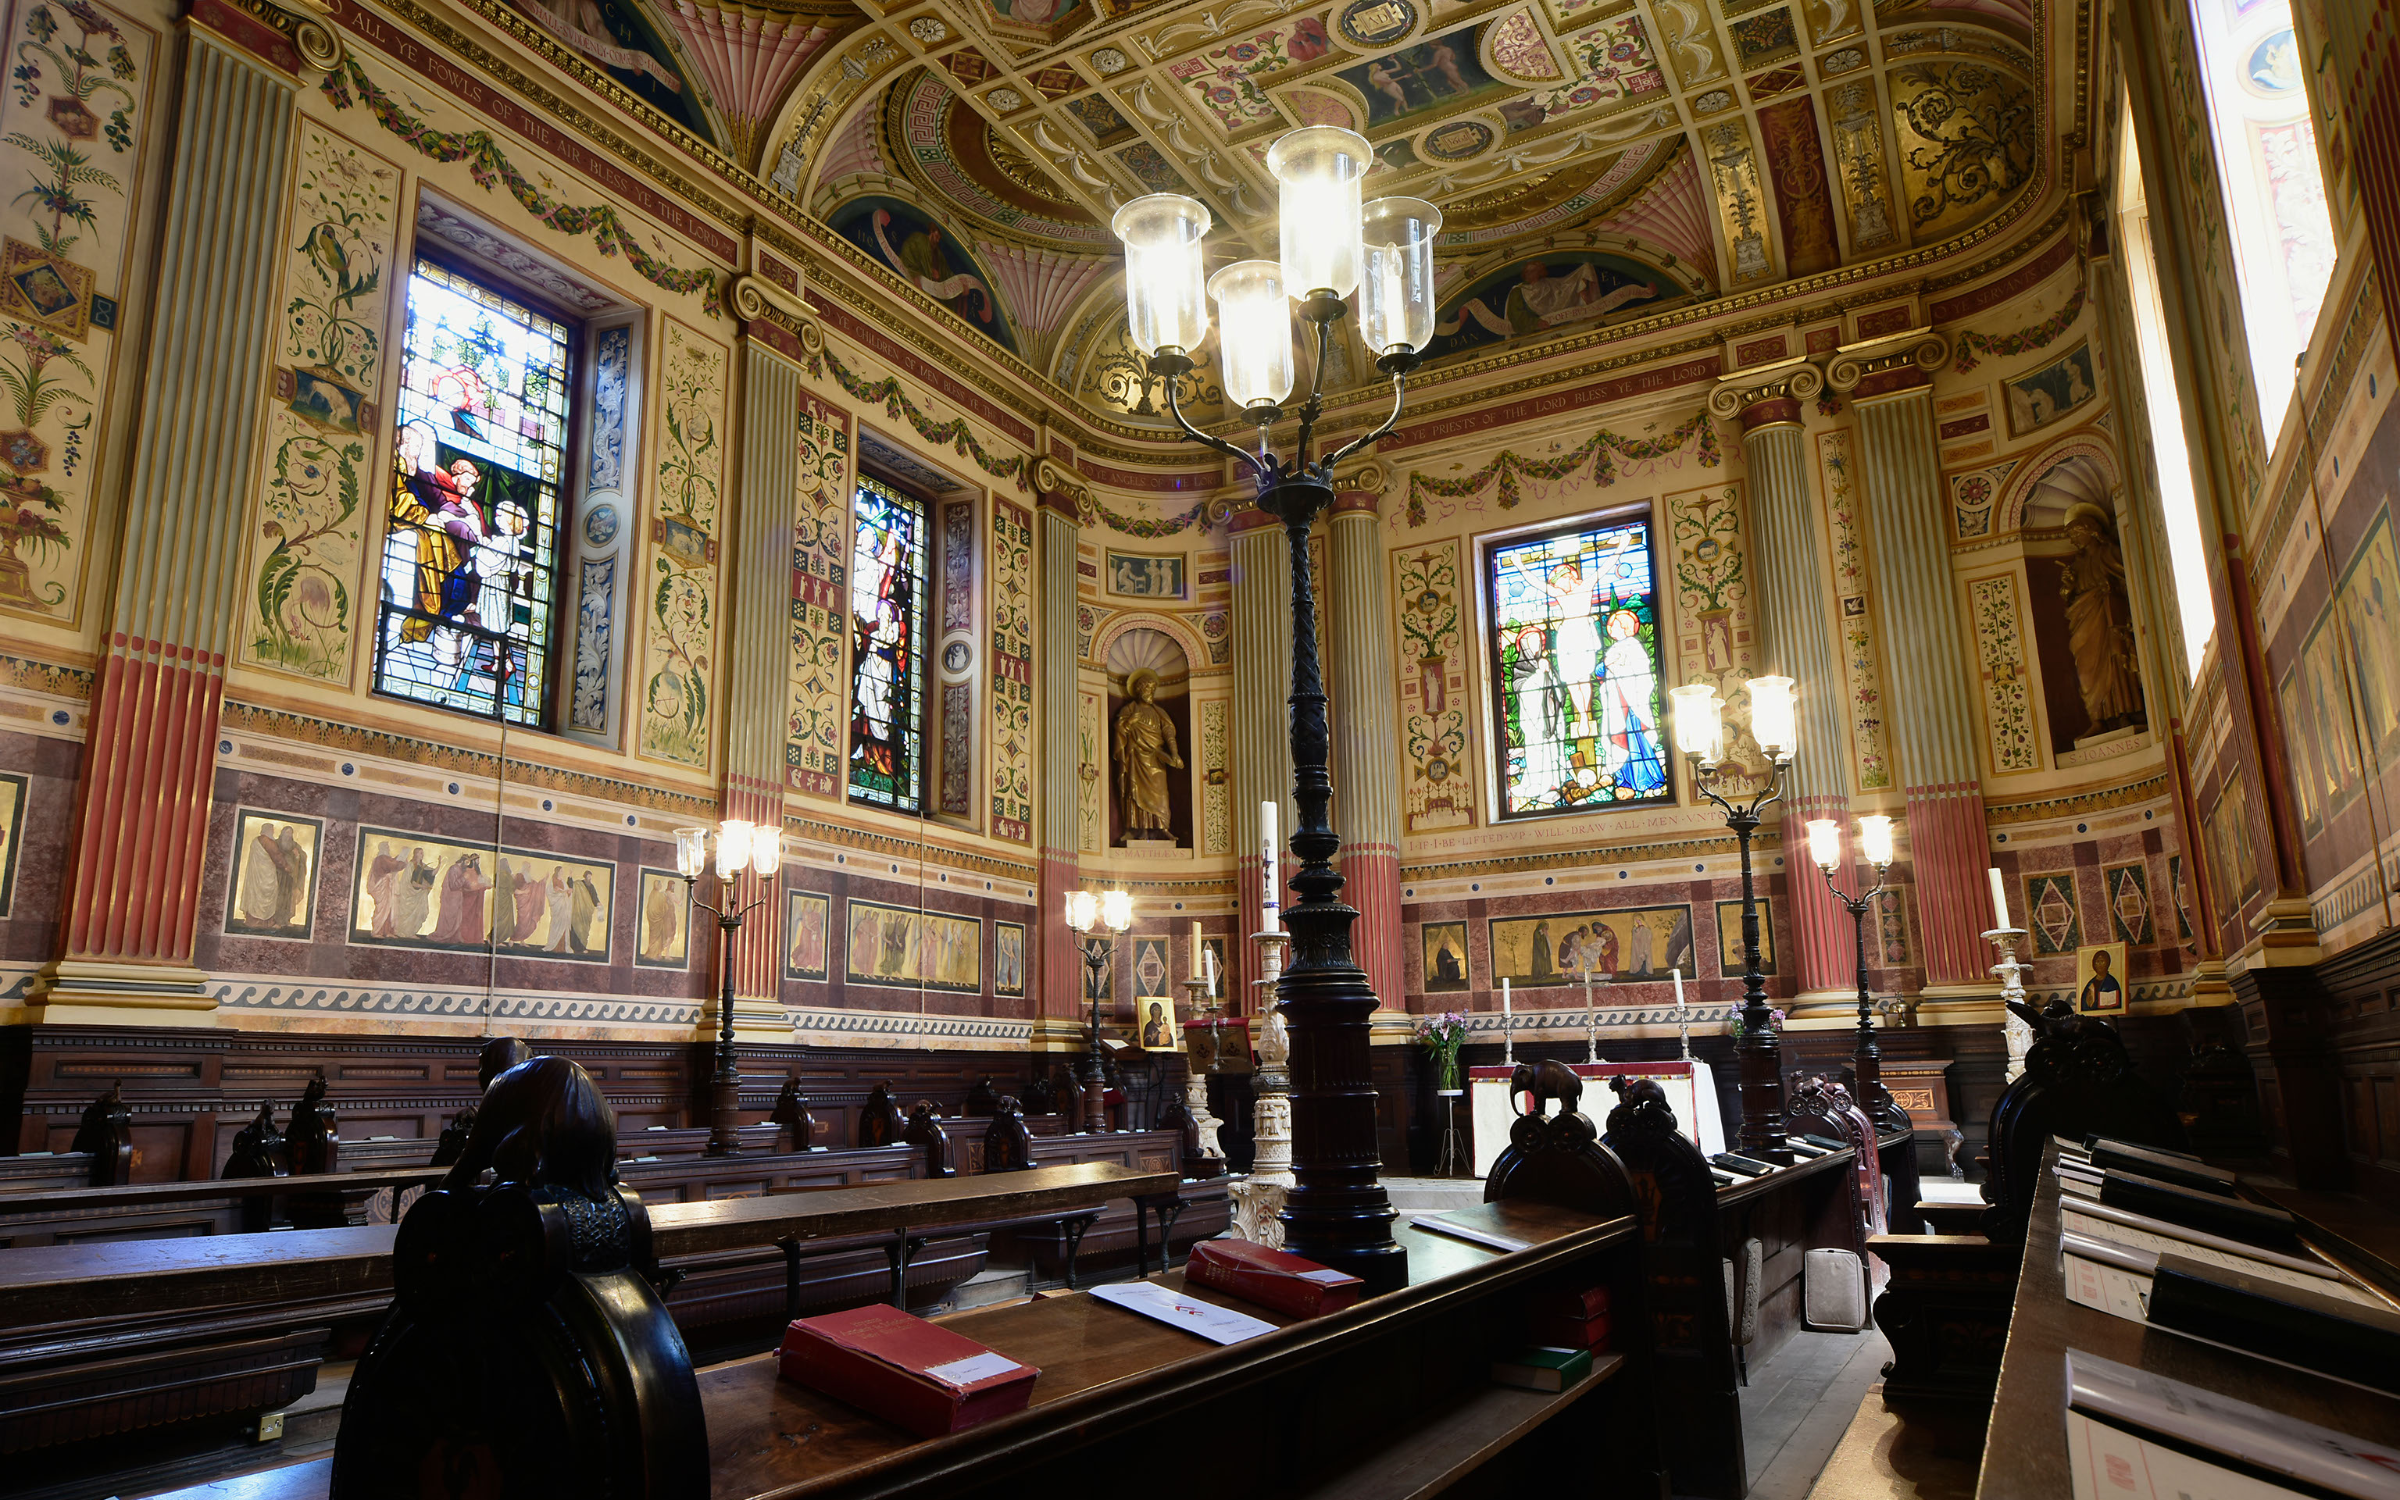 The song of Byrd echoes in the chapel at Worcester College, Oxford. Credit: Eye Ubiquitous via Getty Images